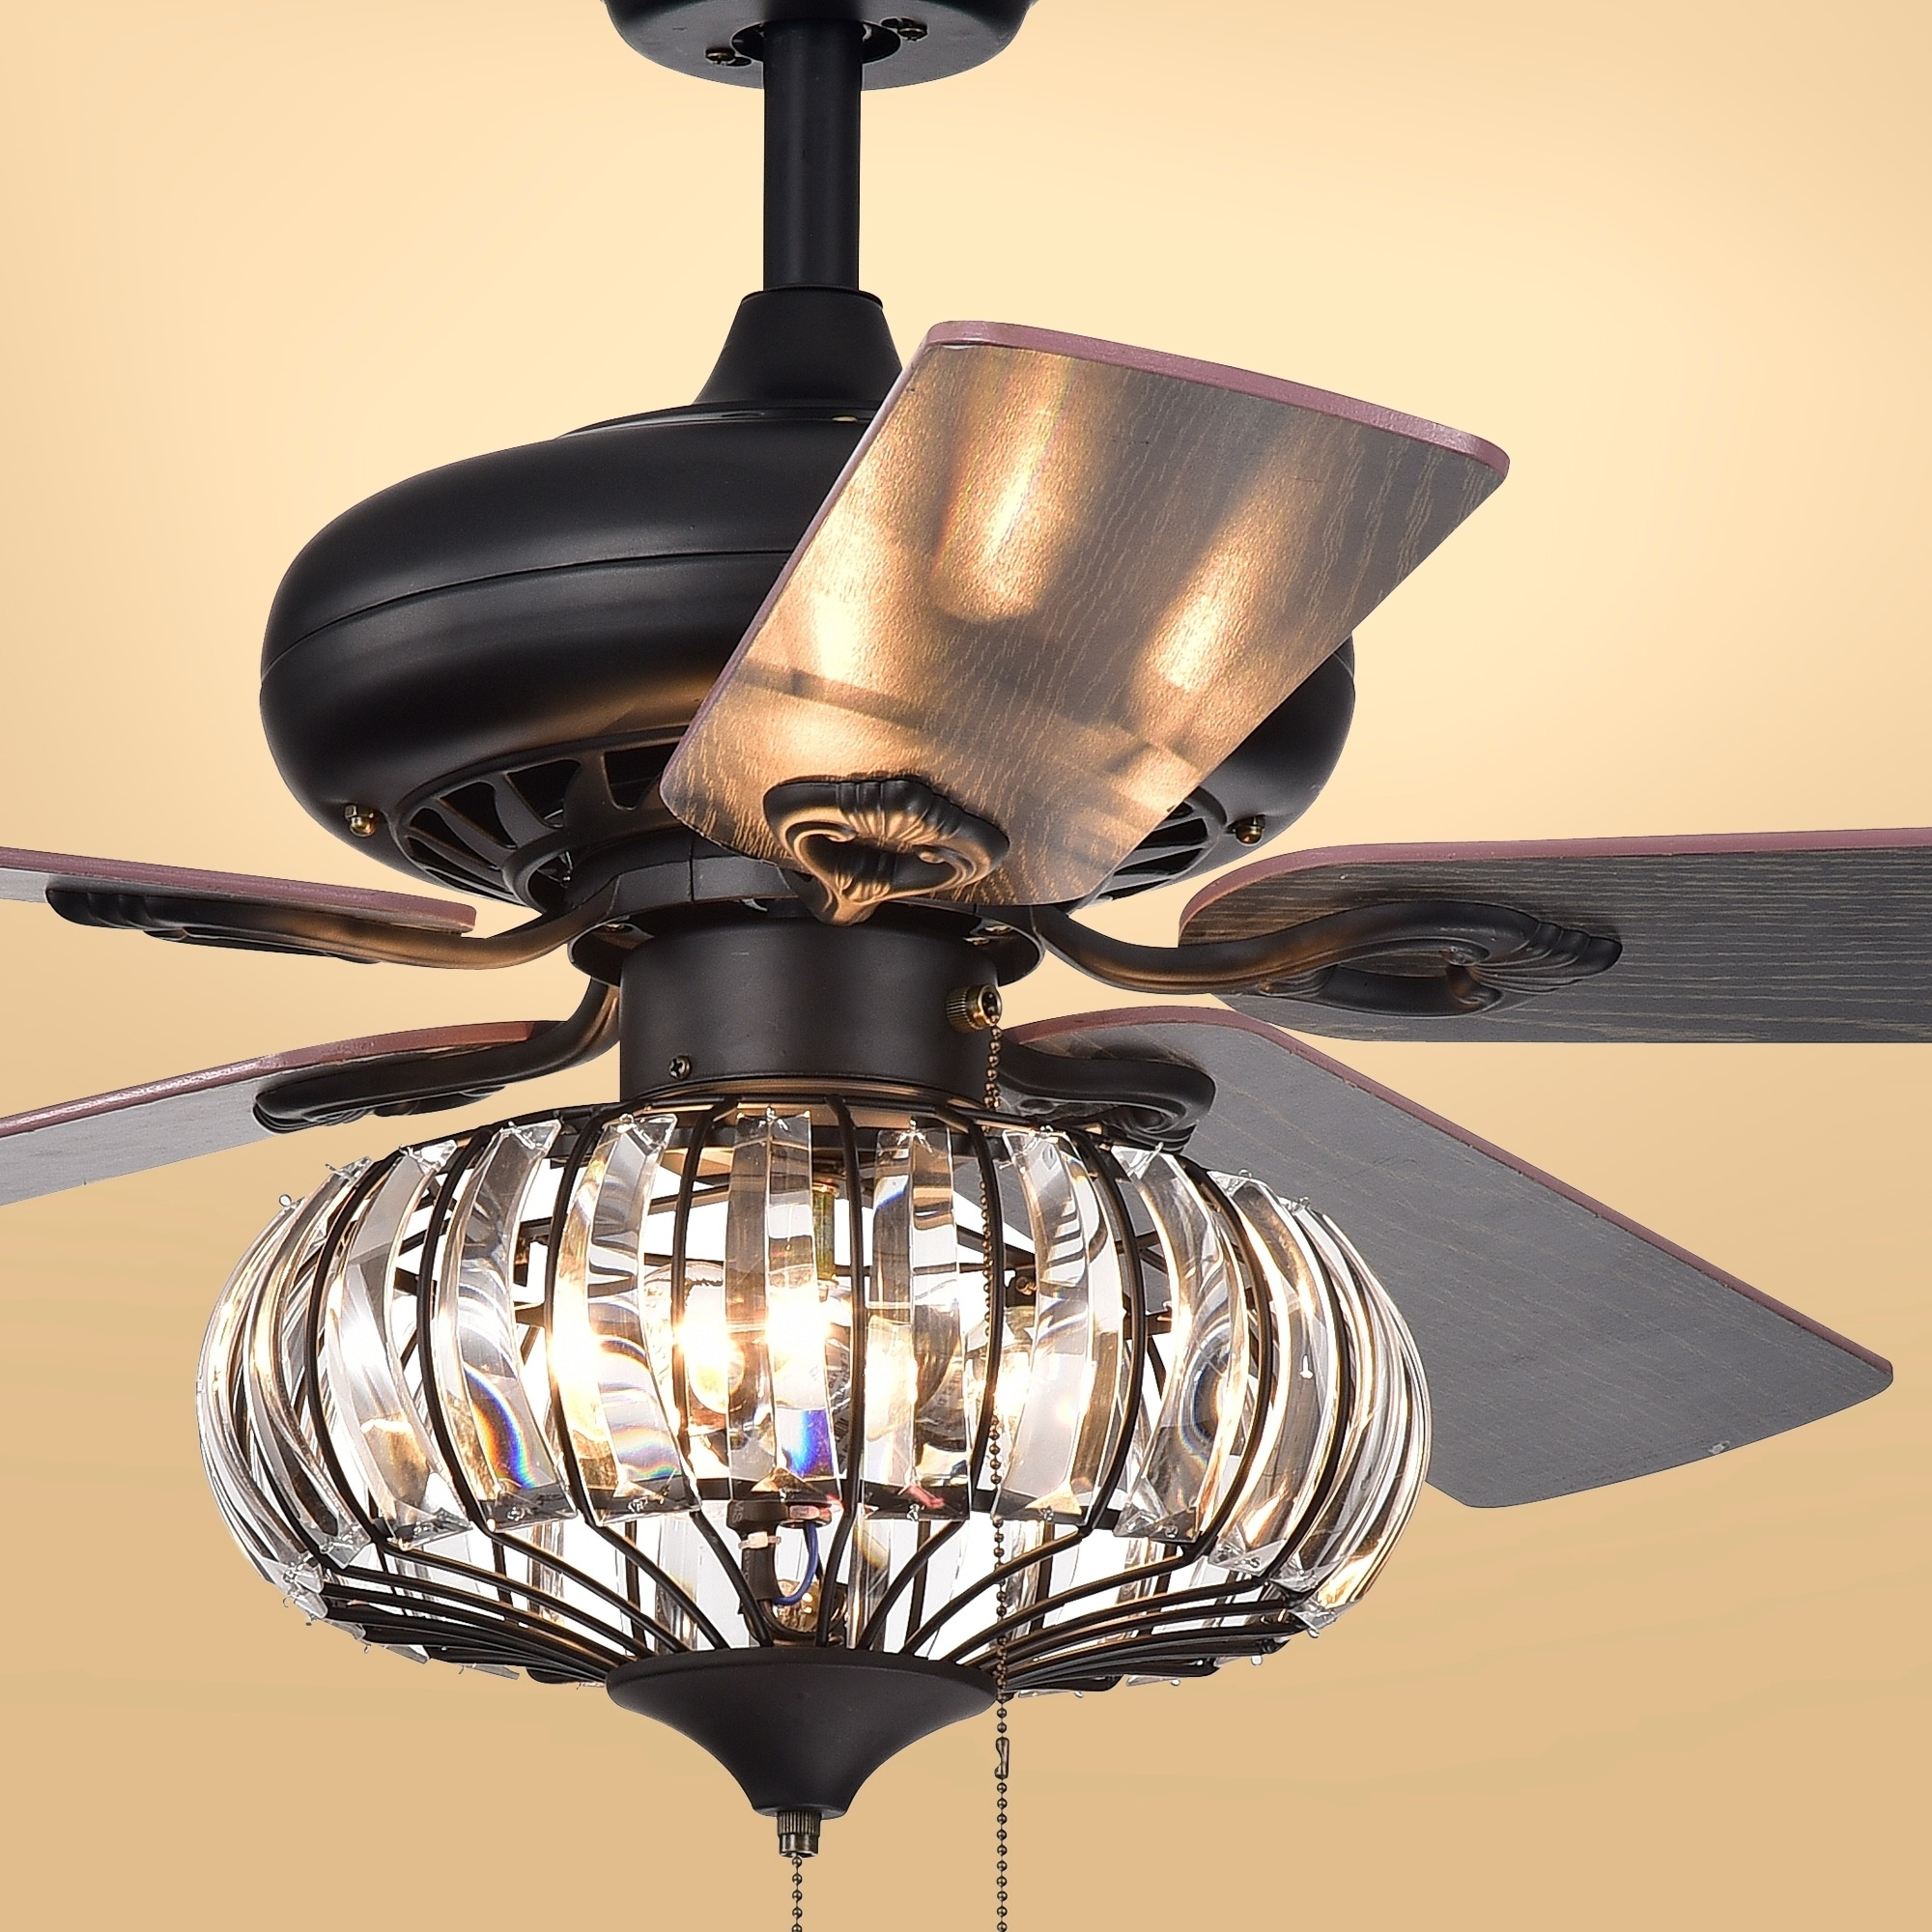 3 Light Ceiling Fan With Remote Shelly Lighting